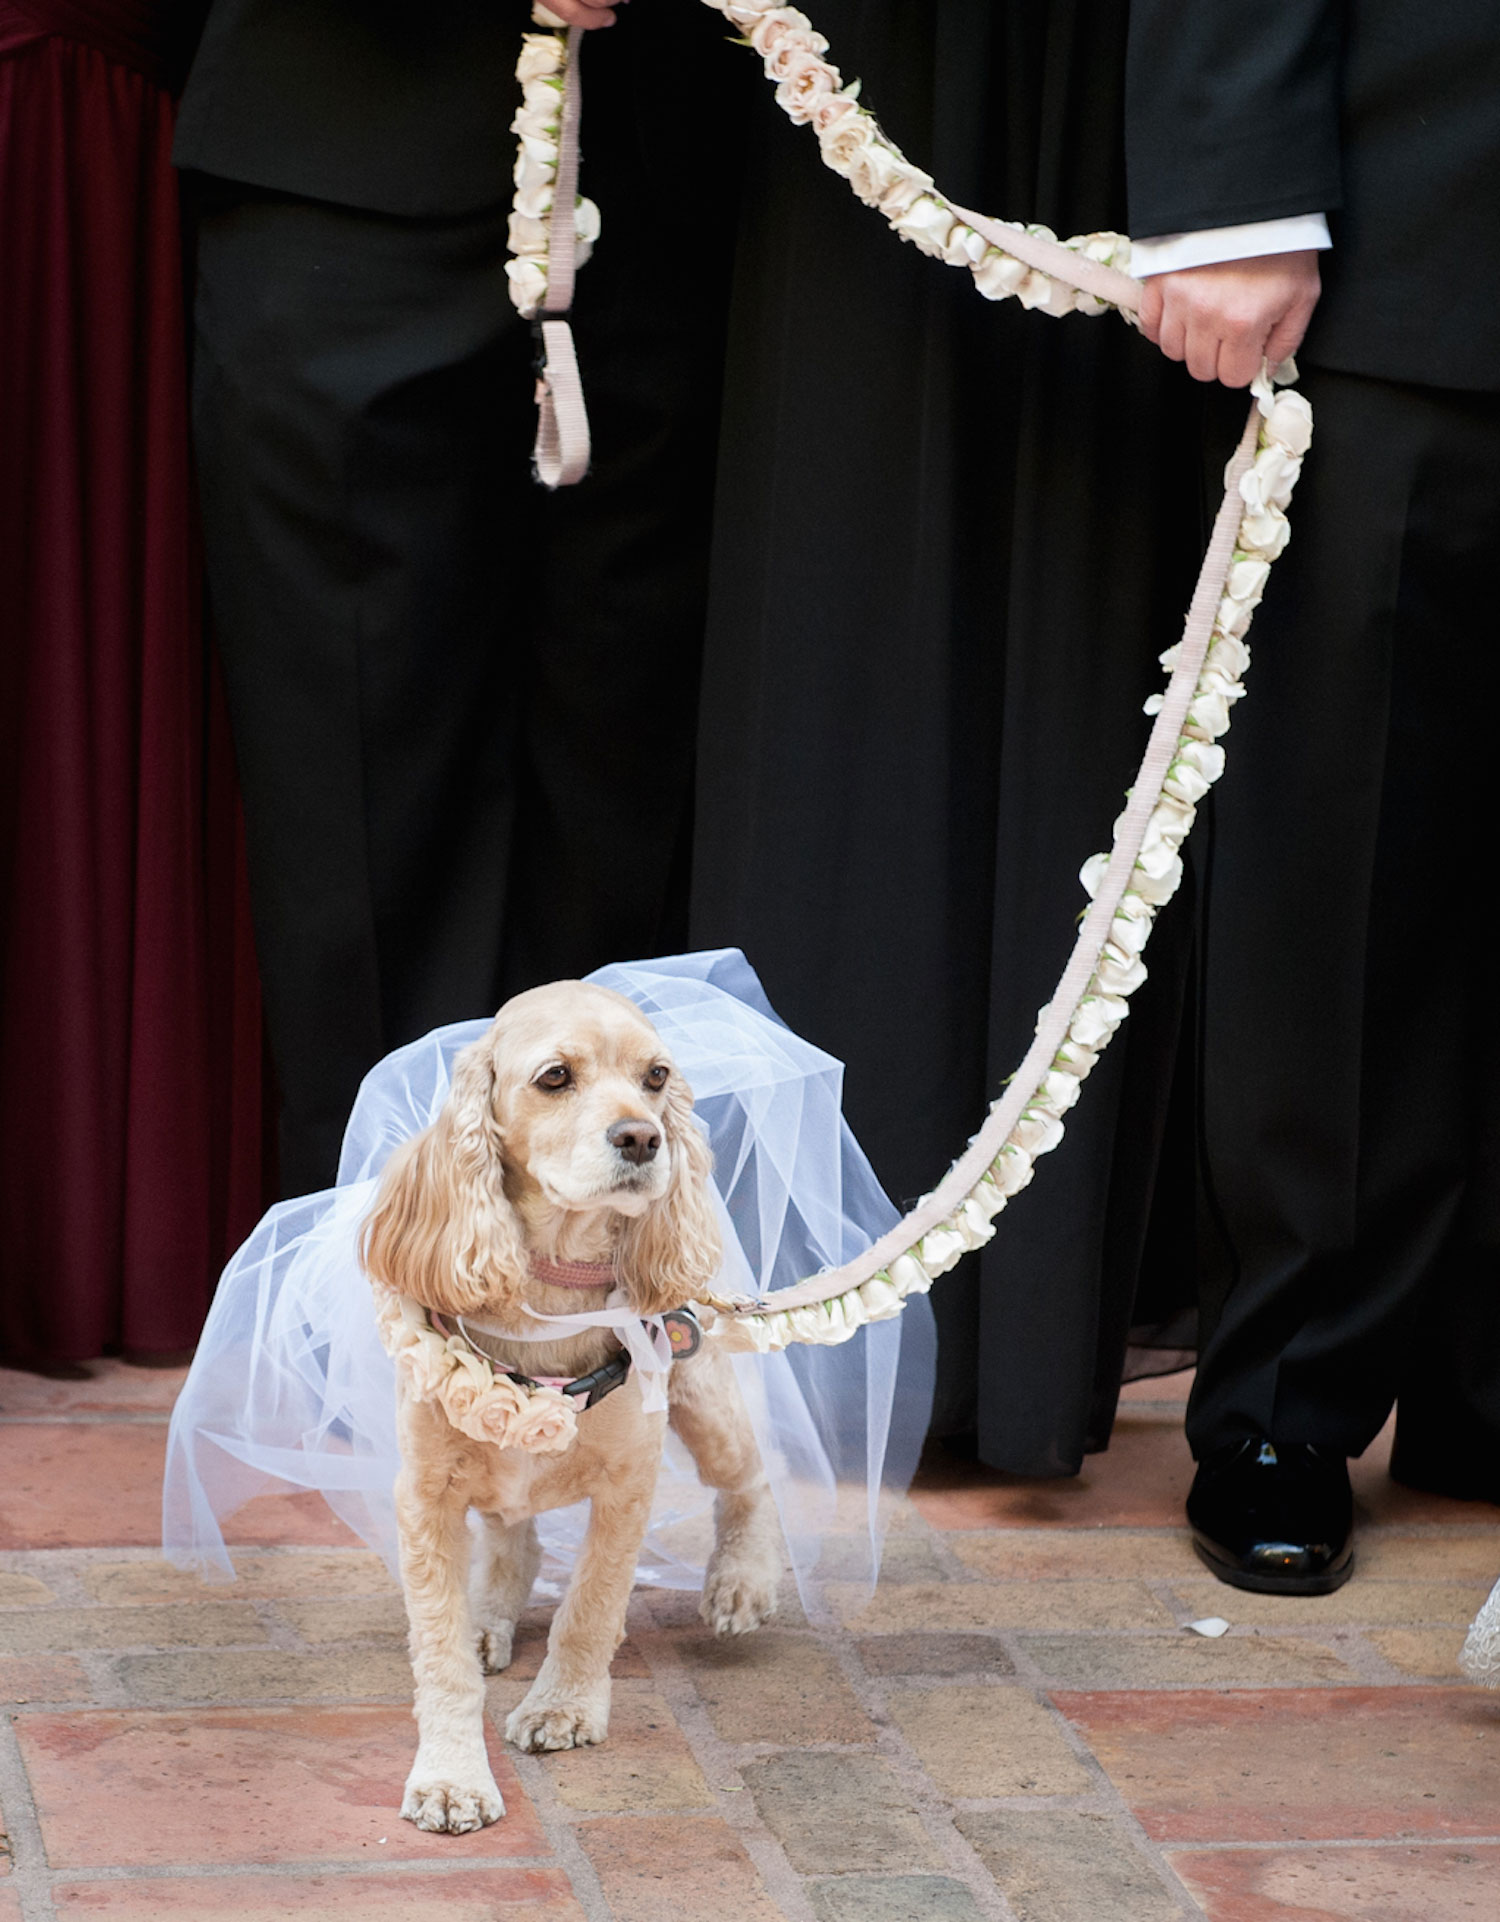 Cute cocker spaniel dog puppy in dress and leash with flowers wedding